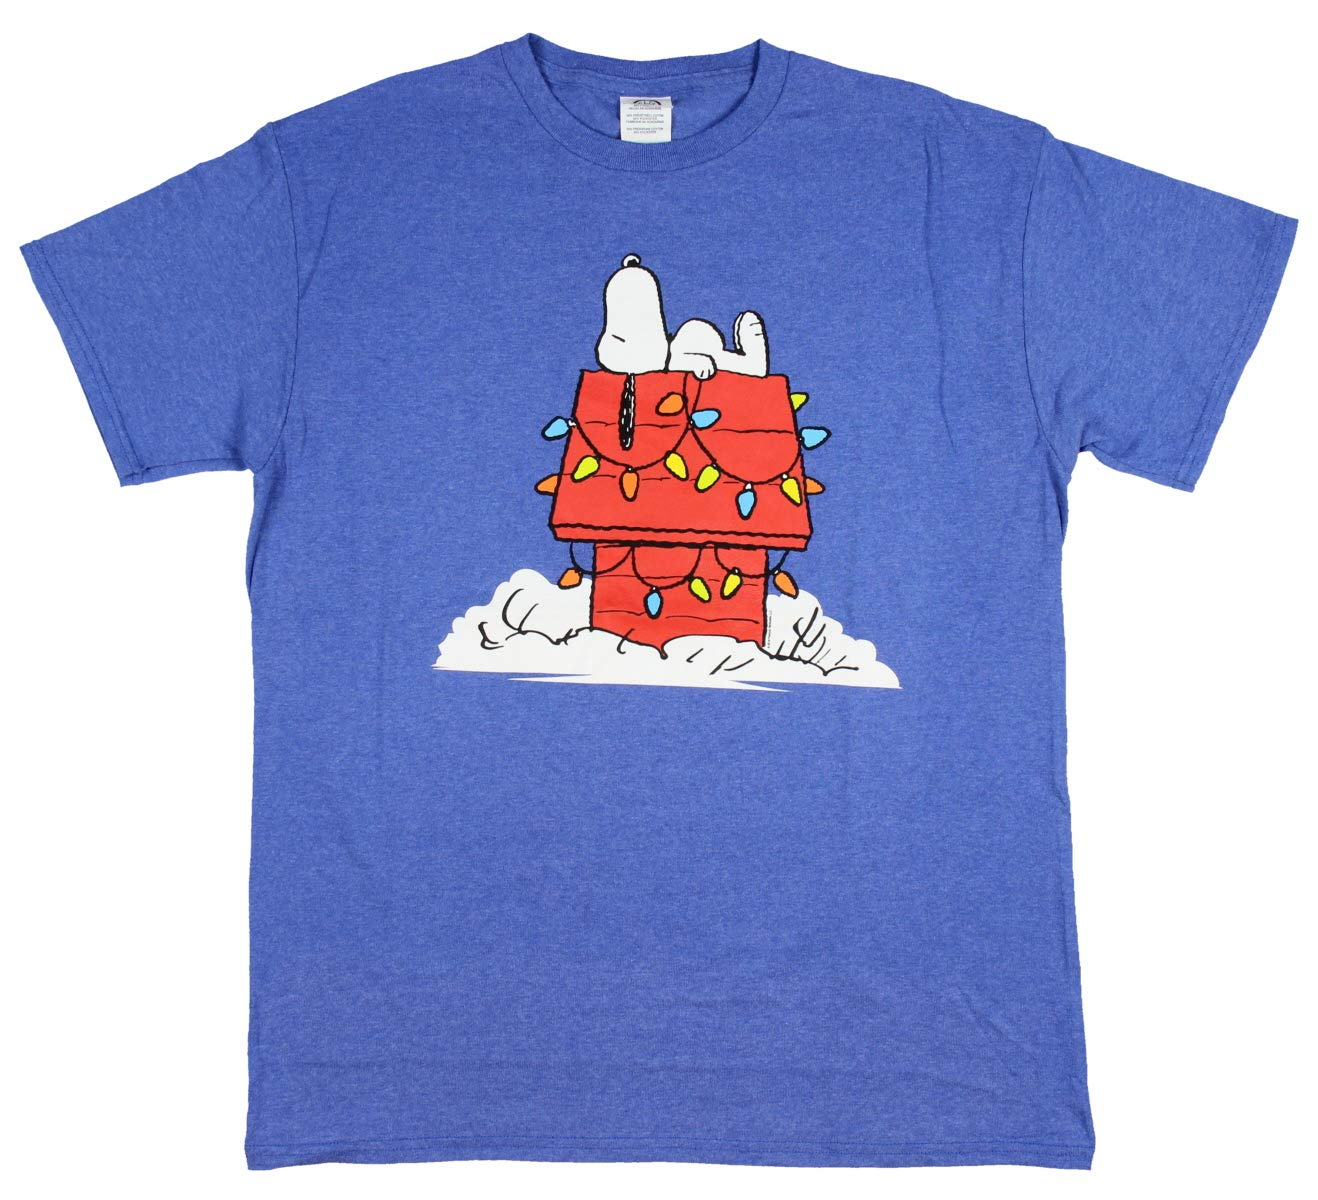 Peanuts Snoopy Shirt Christmas Lights On Doghouse Adult S Tshirt